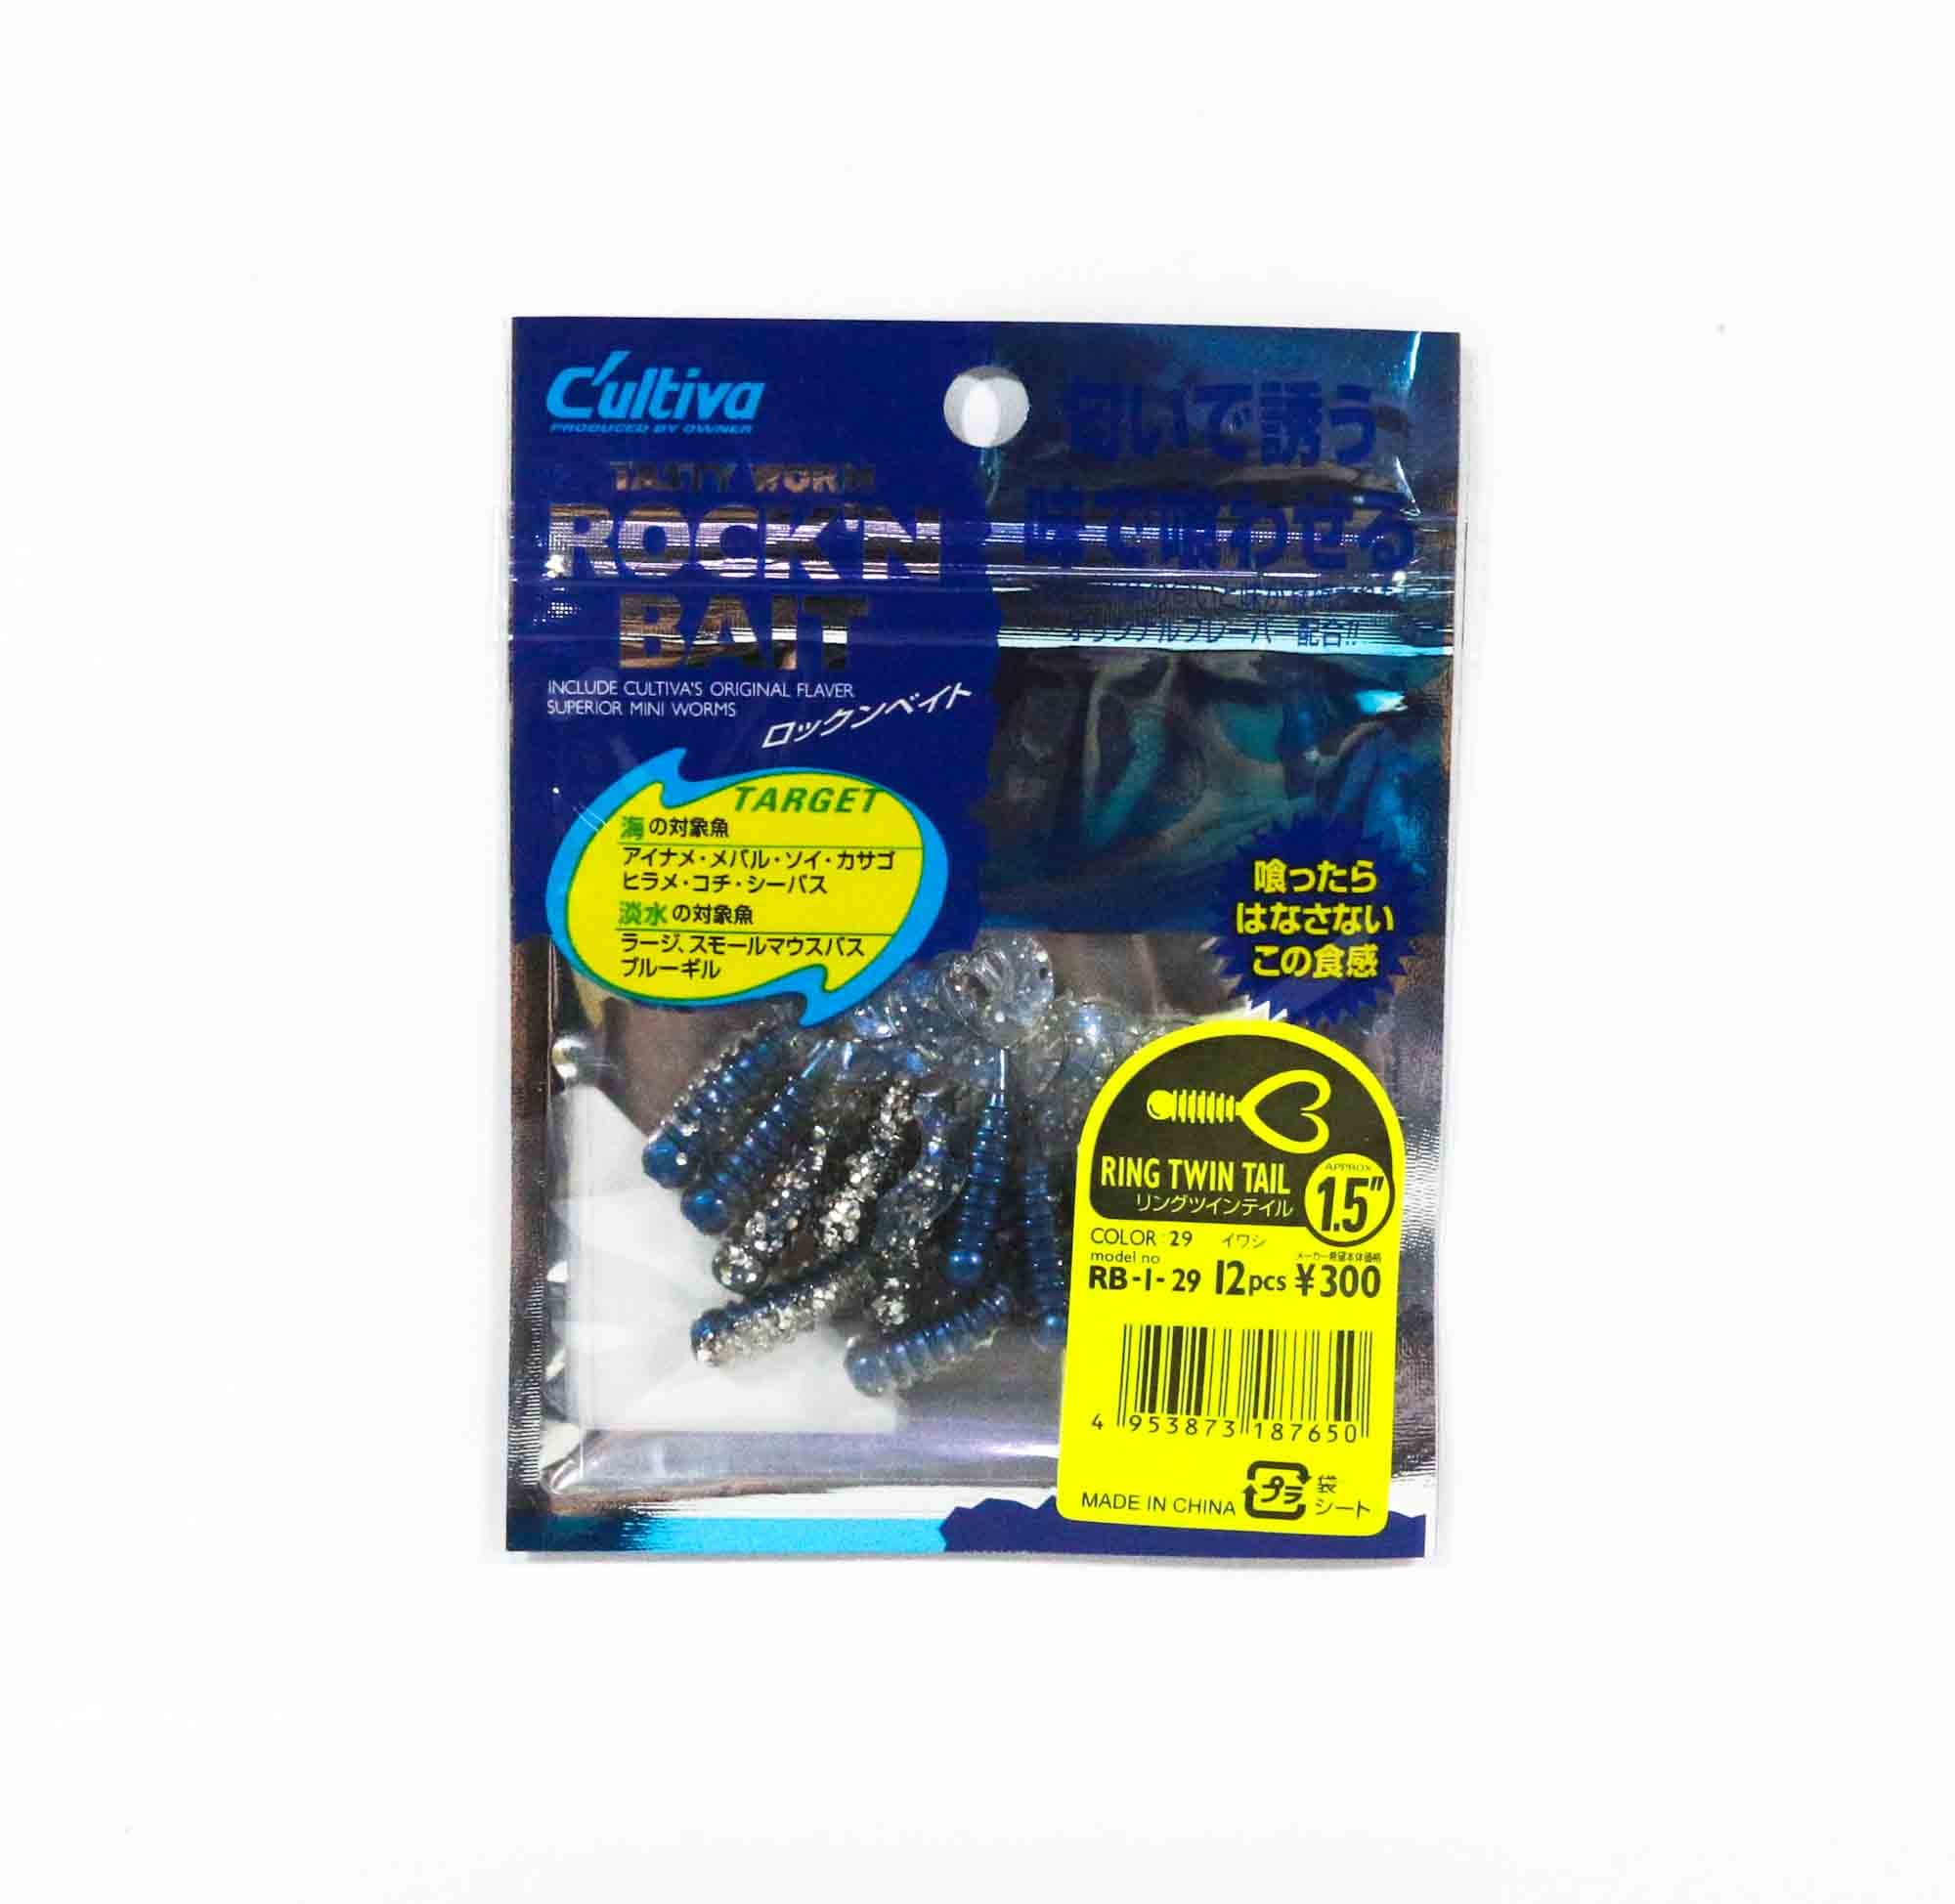 Owner Soft Lure RB-1 Ring Twin Tail 12 Pieces 1.5 Inches 29 (7650)